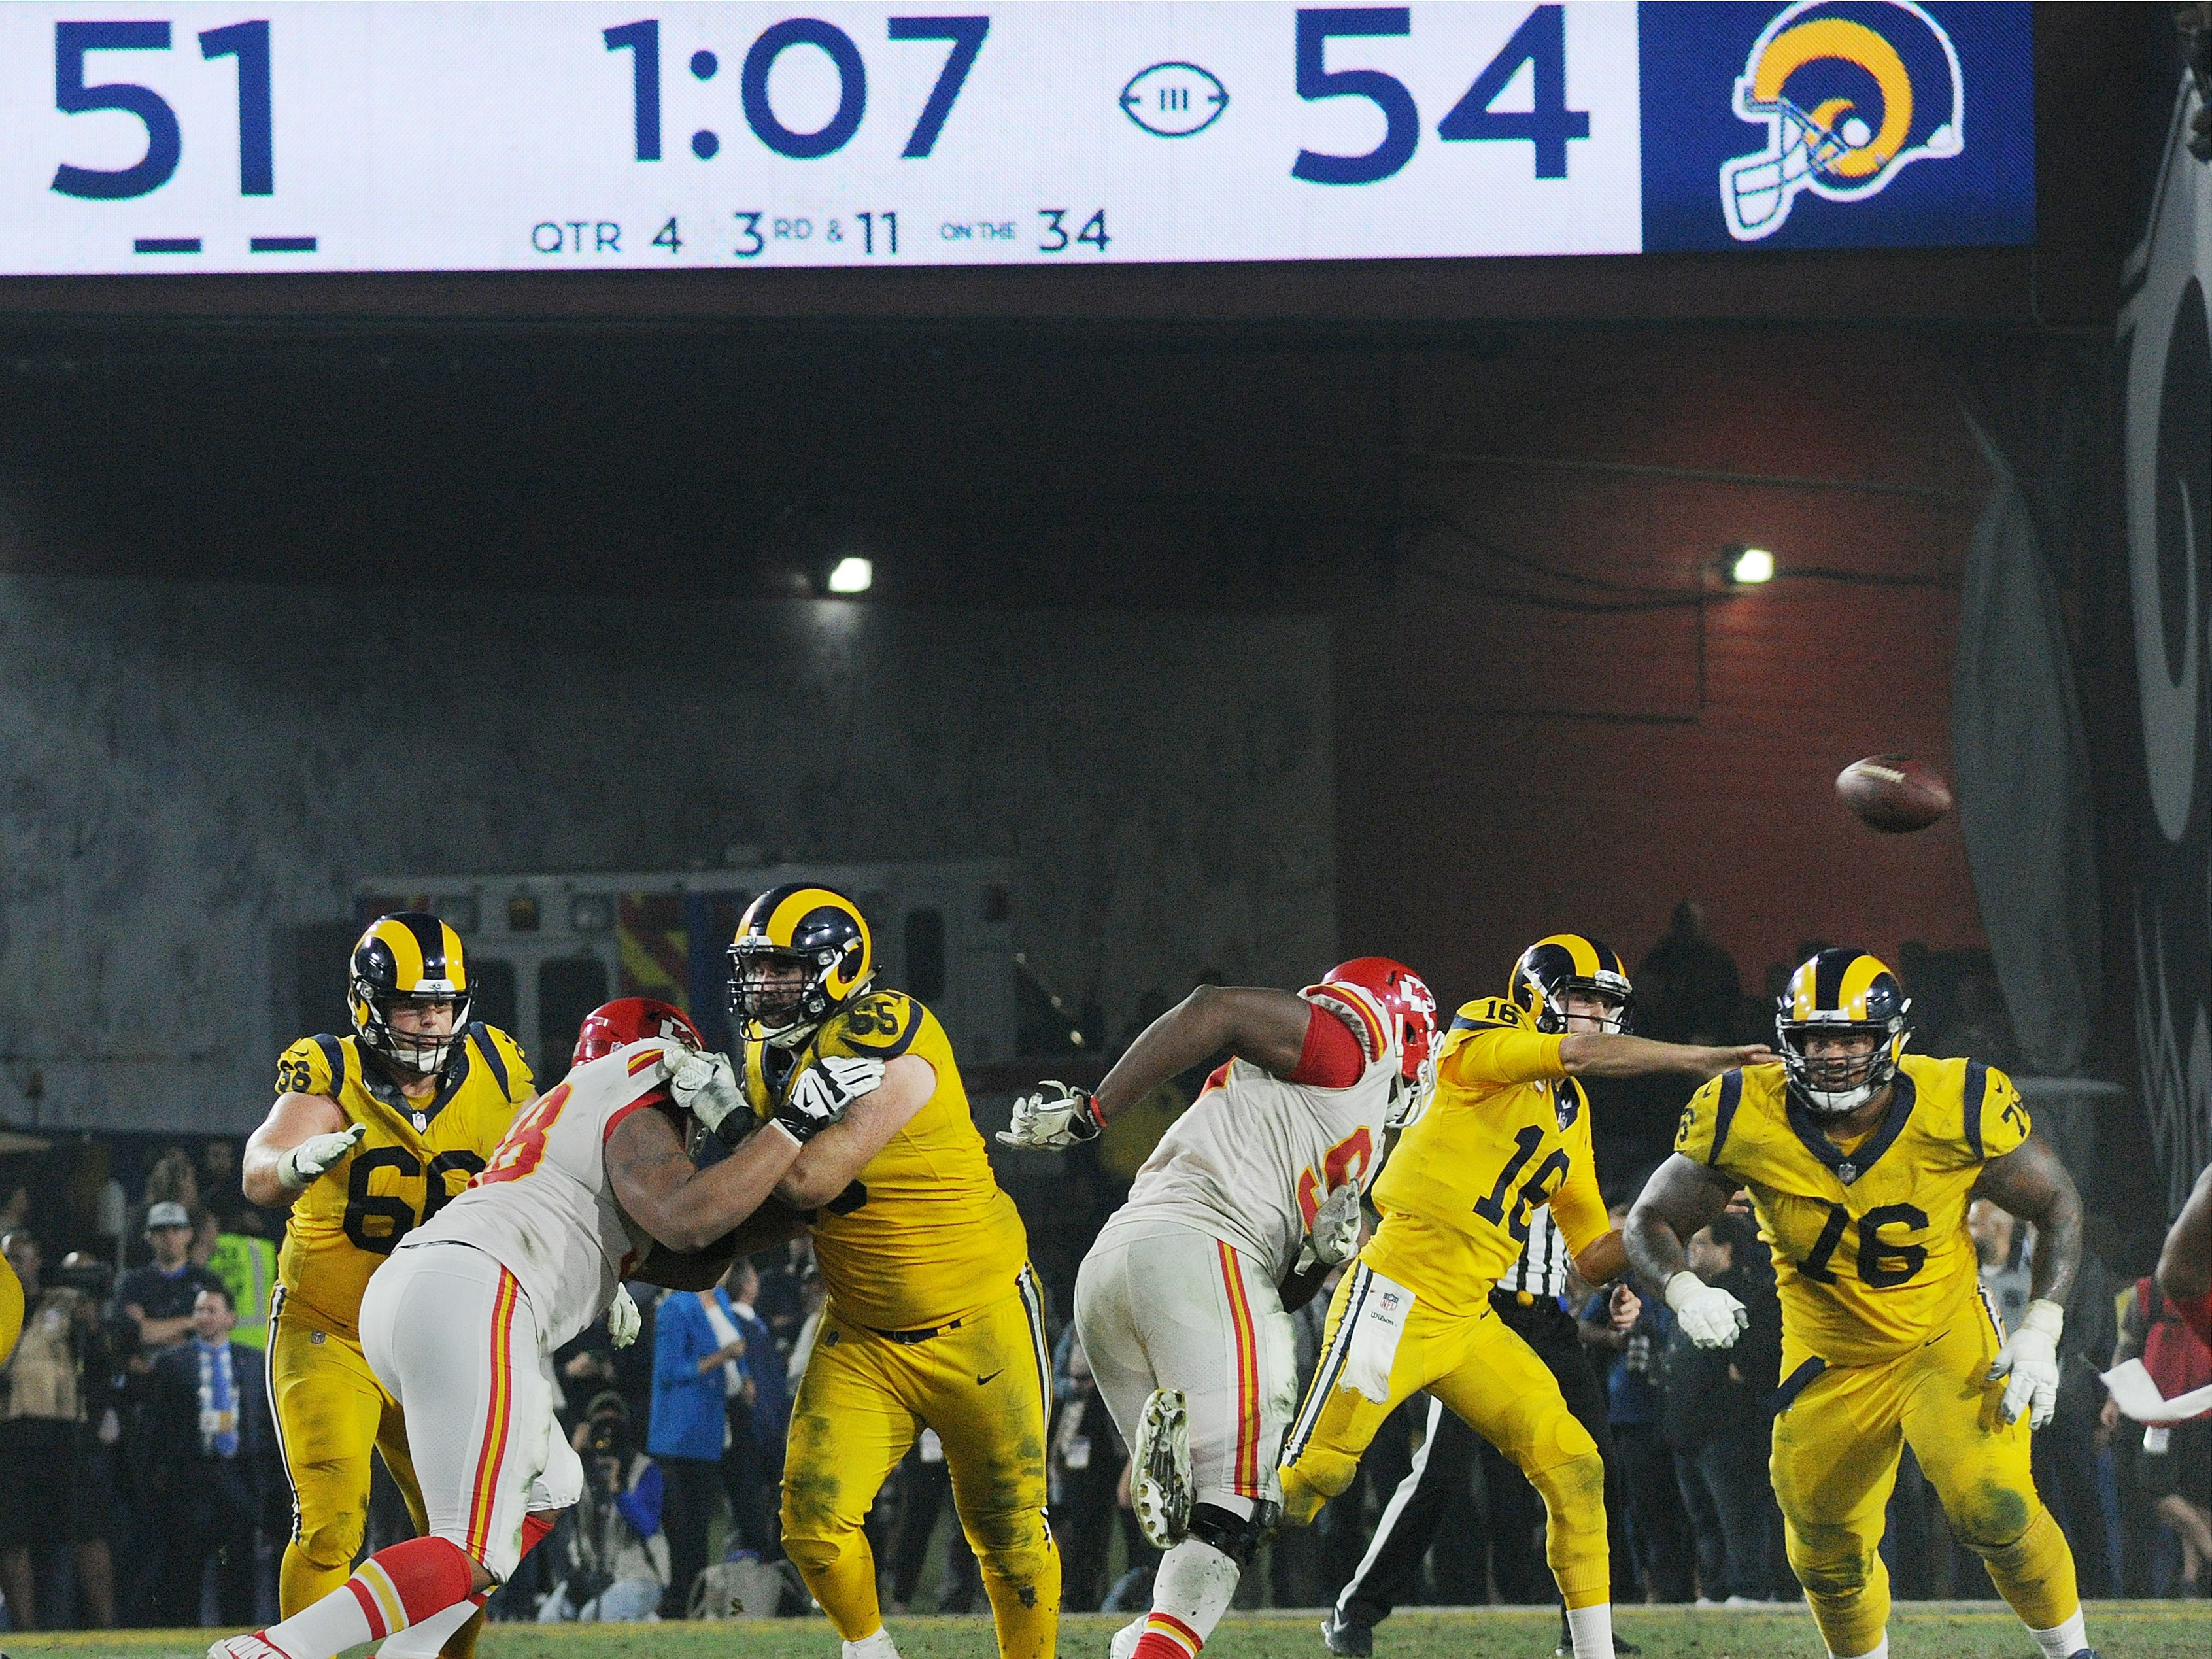 Quarterback Jared Goff throws a pass with 1:09 left in the game during the Rams' 54-51 win over the Chiefs on Monday night.